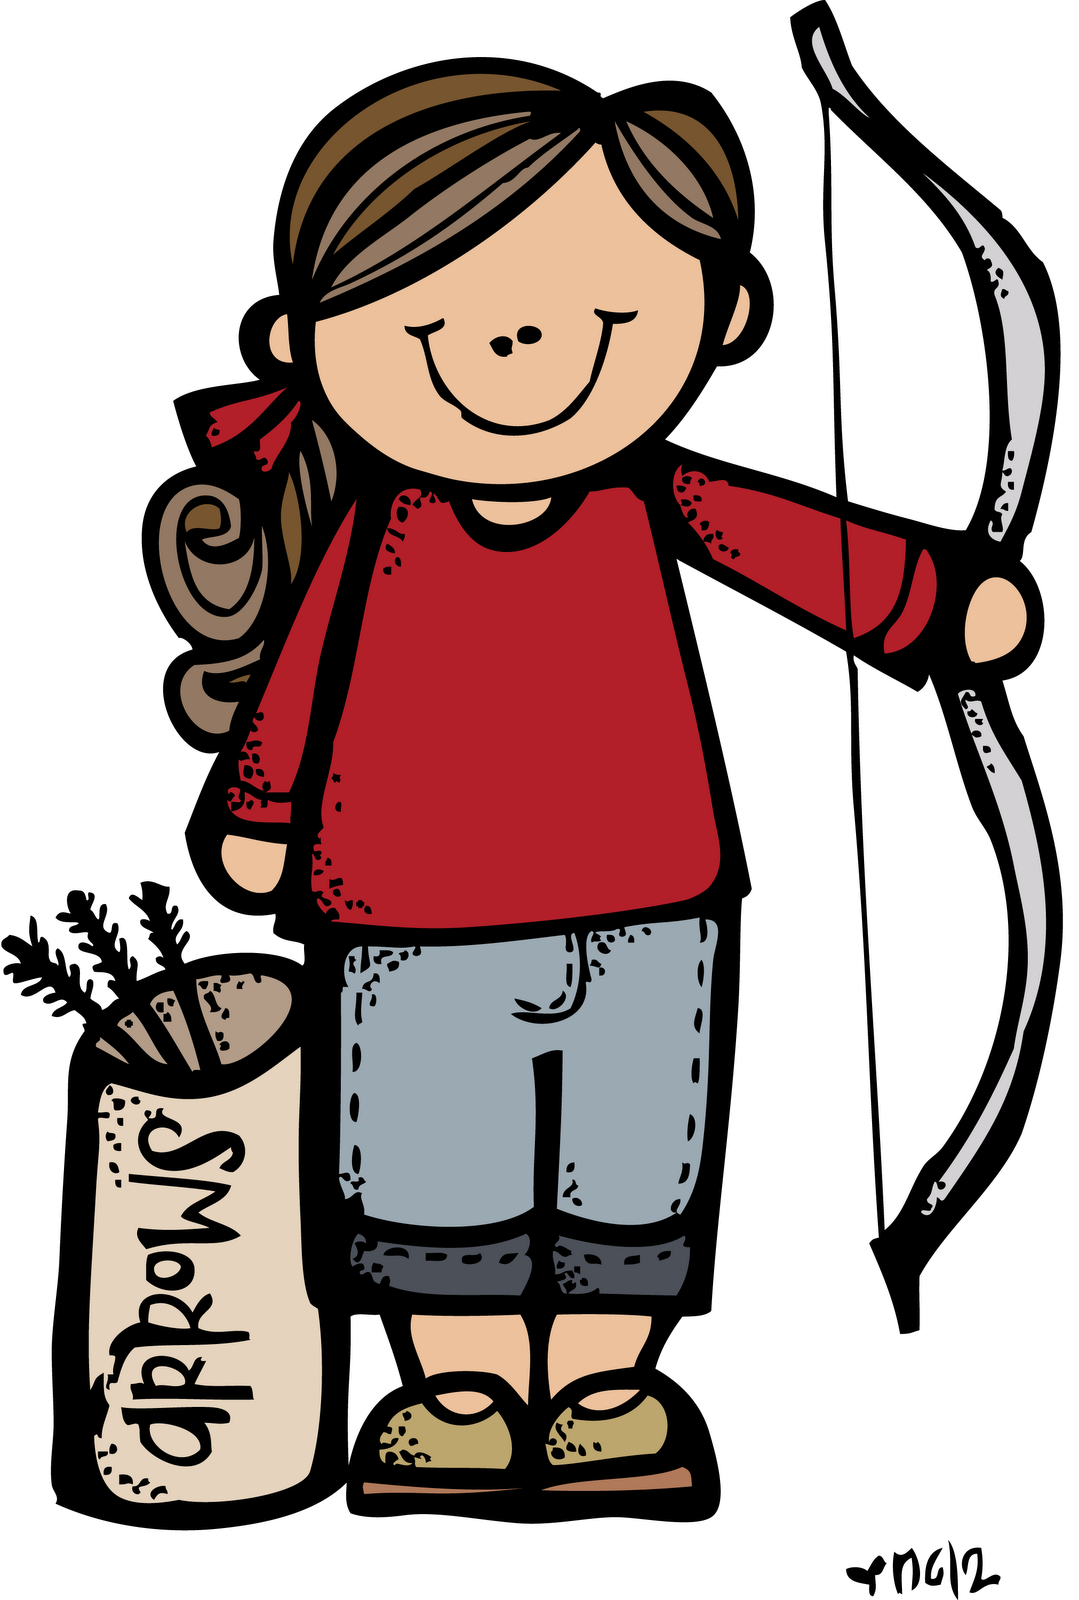 Camper clipart person. Melonheadz lds illustrating girls